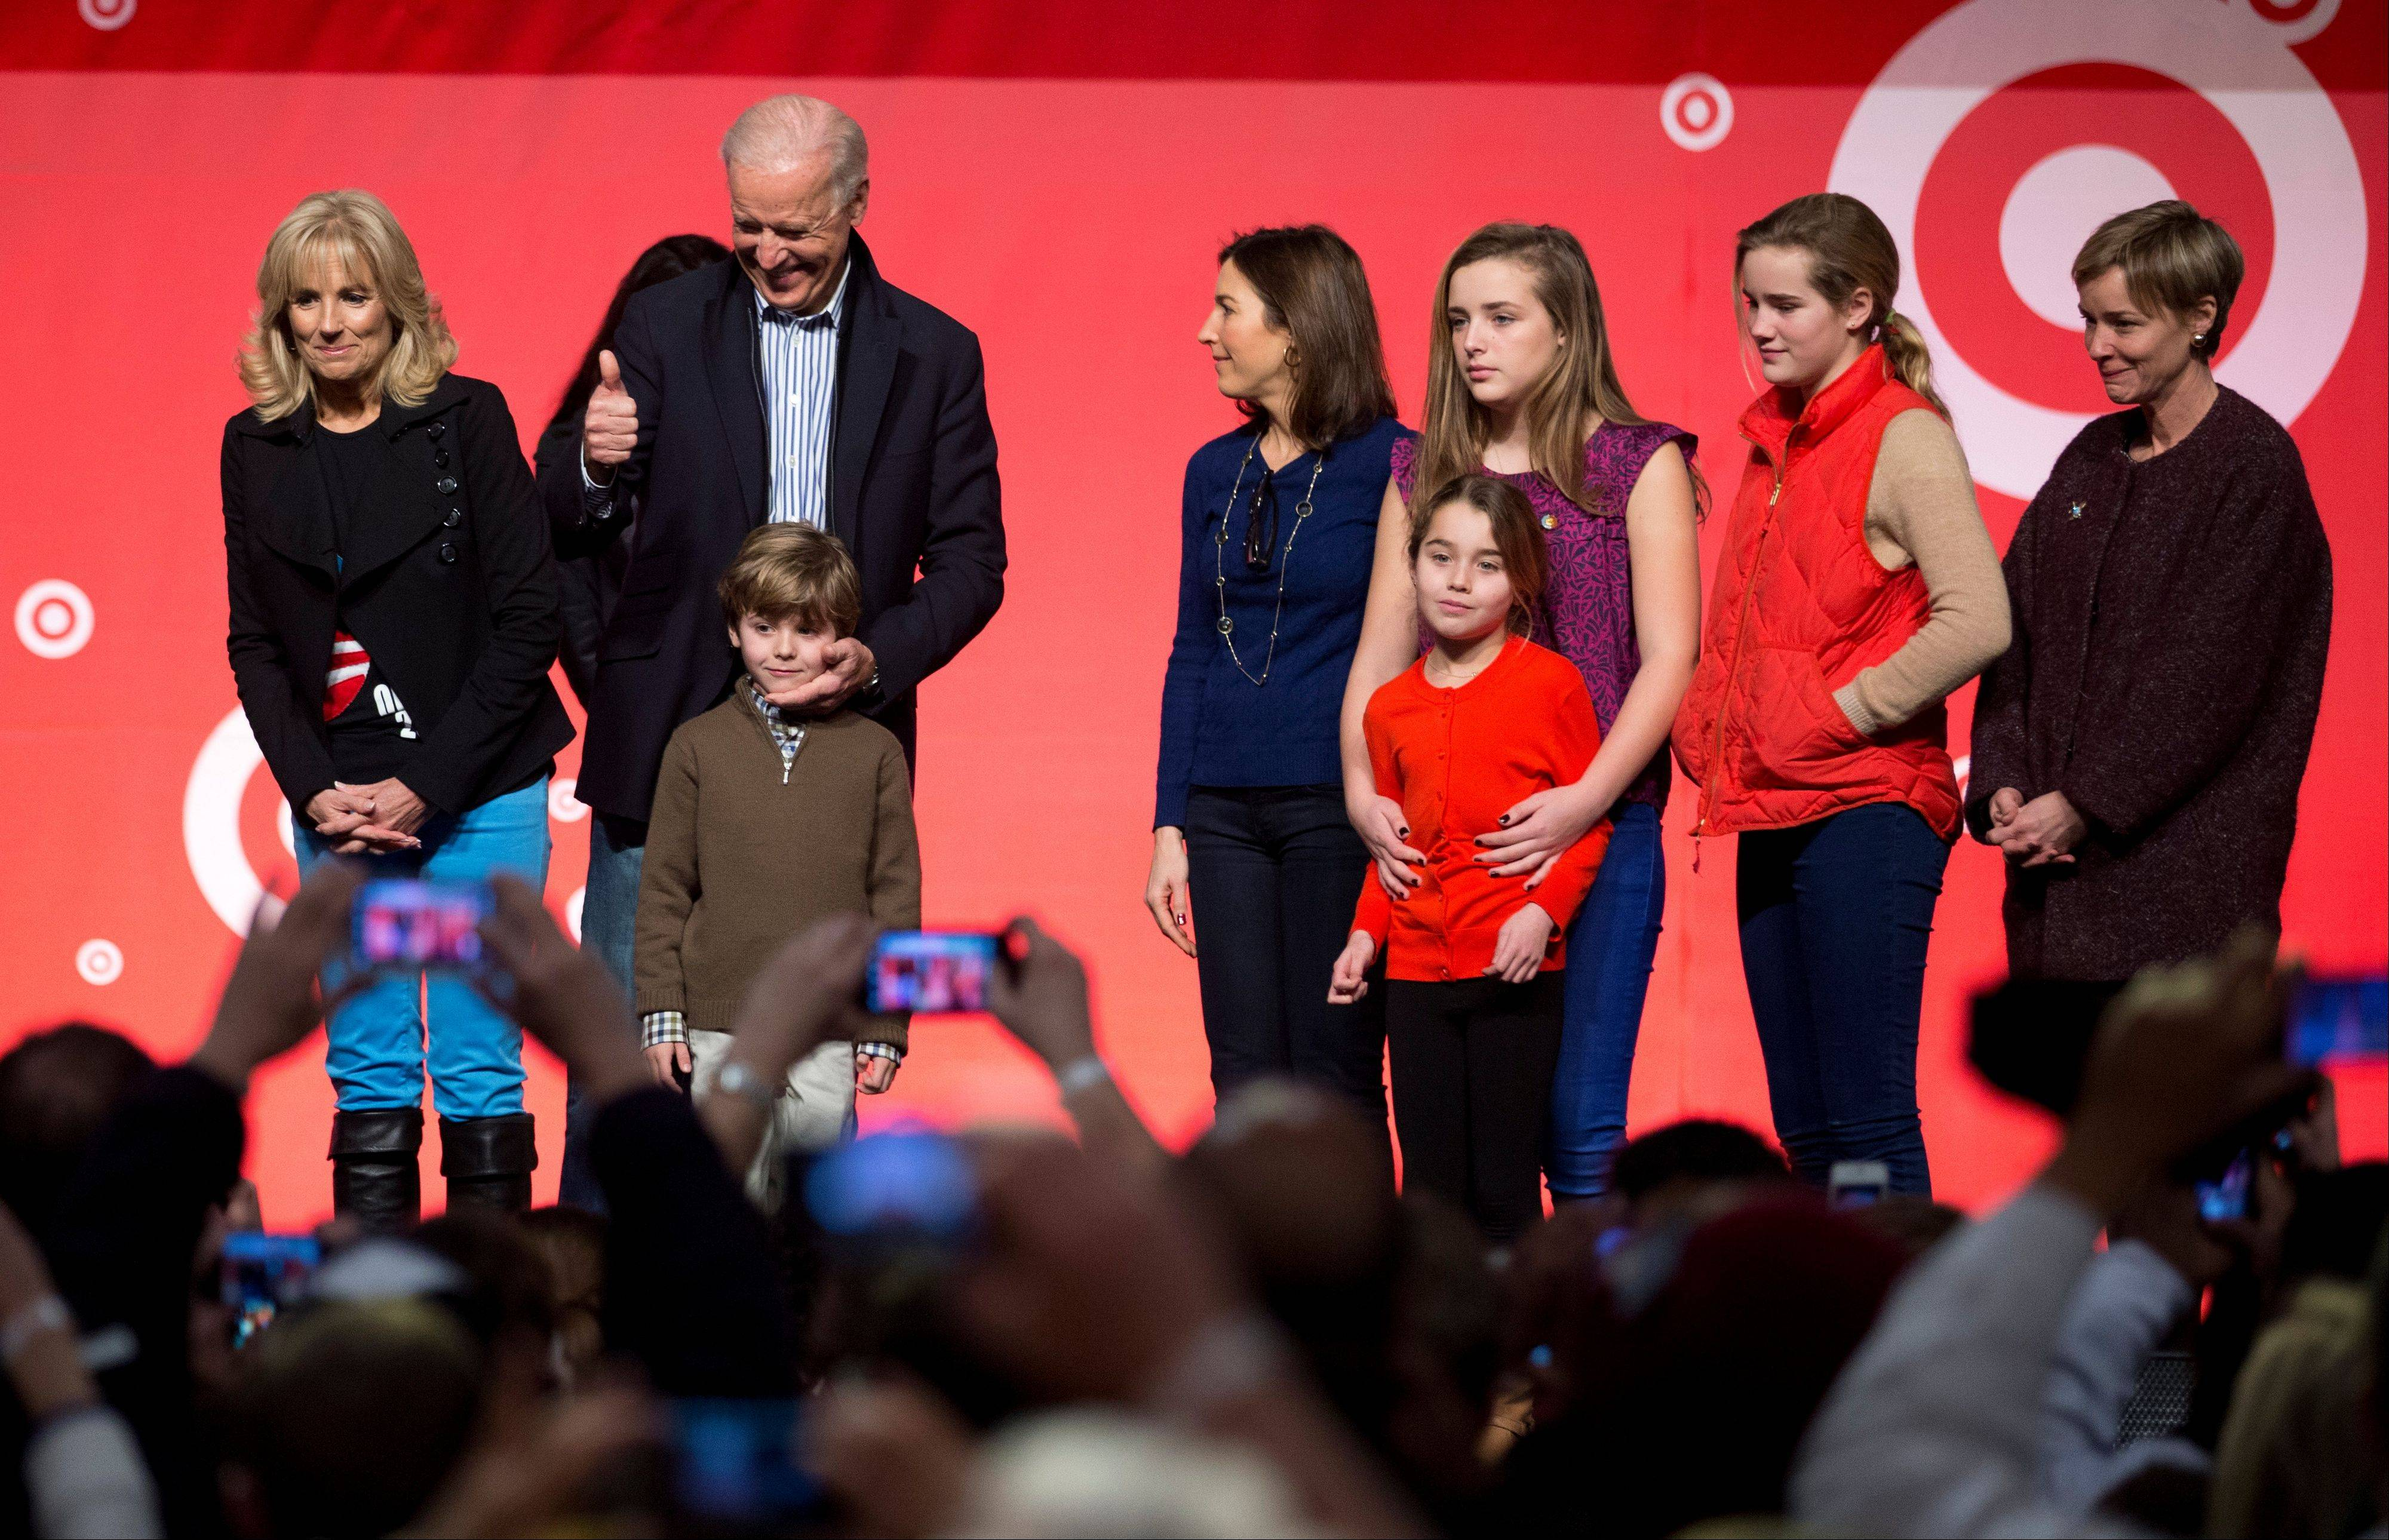 Vice President Joe Biden, second from left, accompanied by his wife Jill Biden, left, and members of the Biden family, flashes a thumbs up as they joined National Day of Service volunteers as part of the 57th Presidential Inauguration in Washington, Saturday, Jan. 19, 2013.